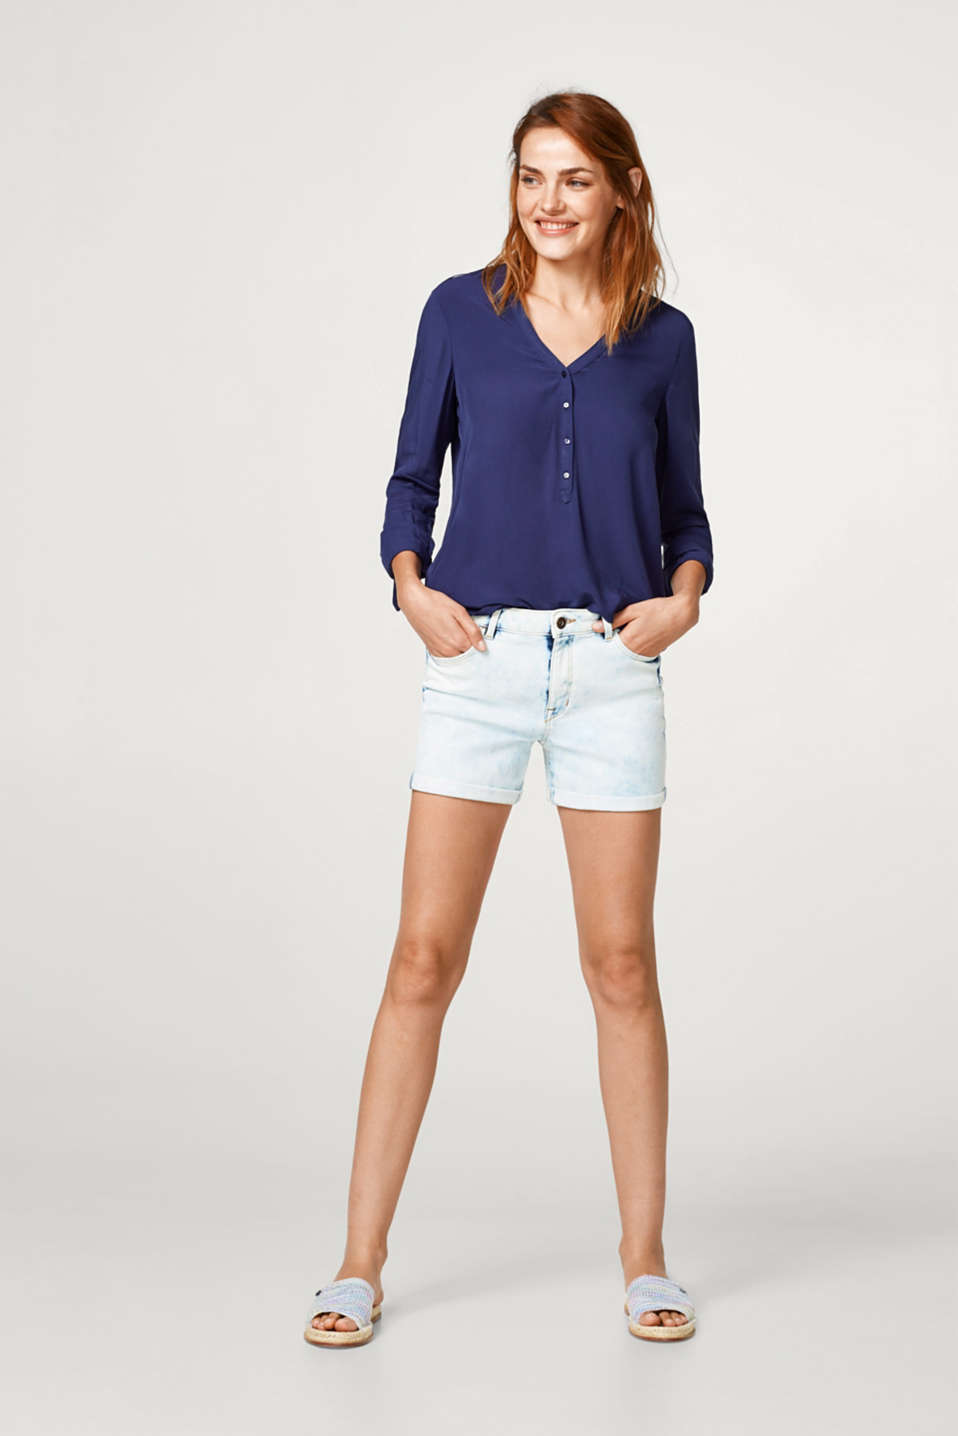 Seidige Henley-Bluse mit Turn-up-Ärmeln